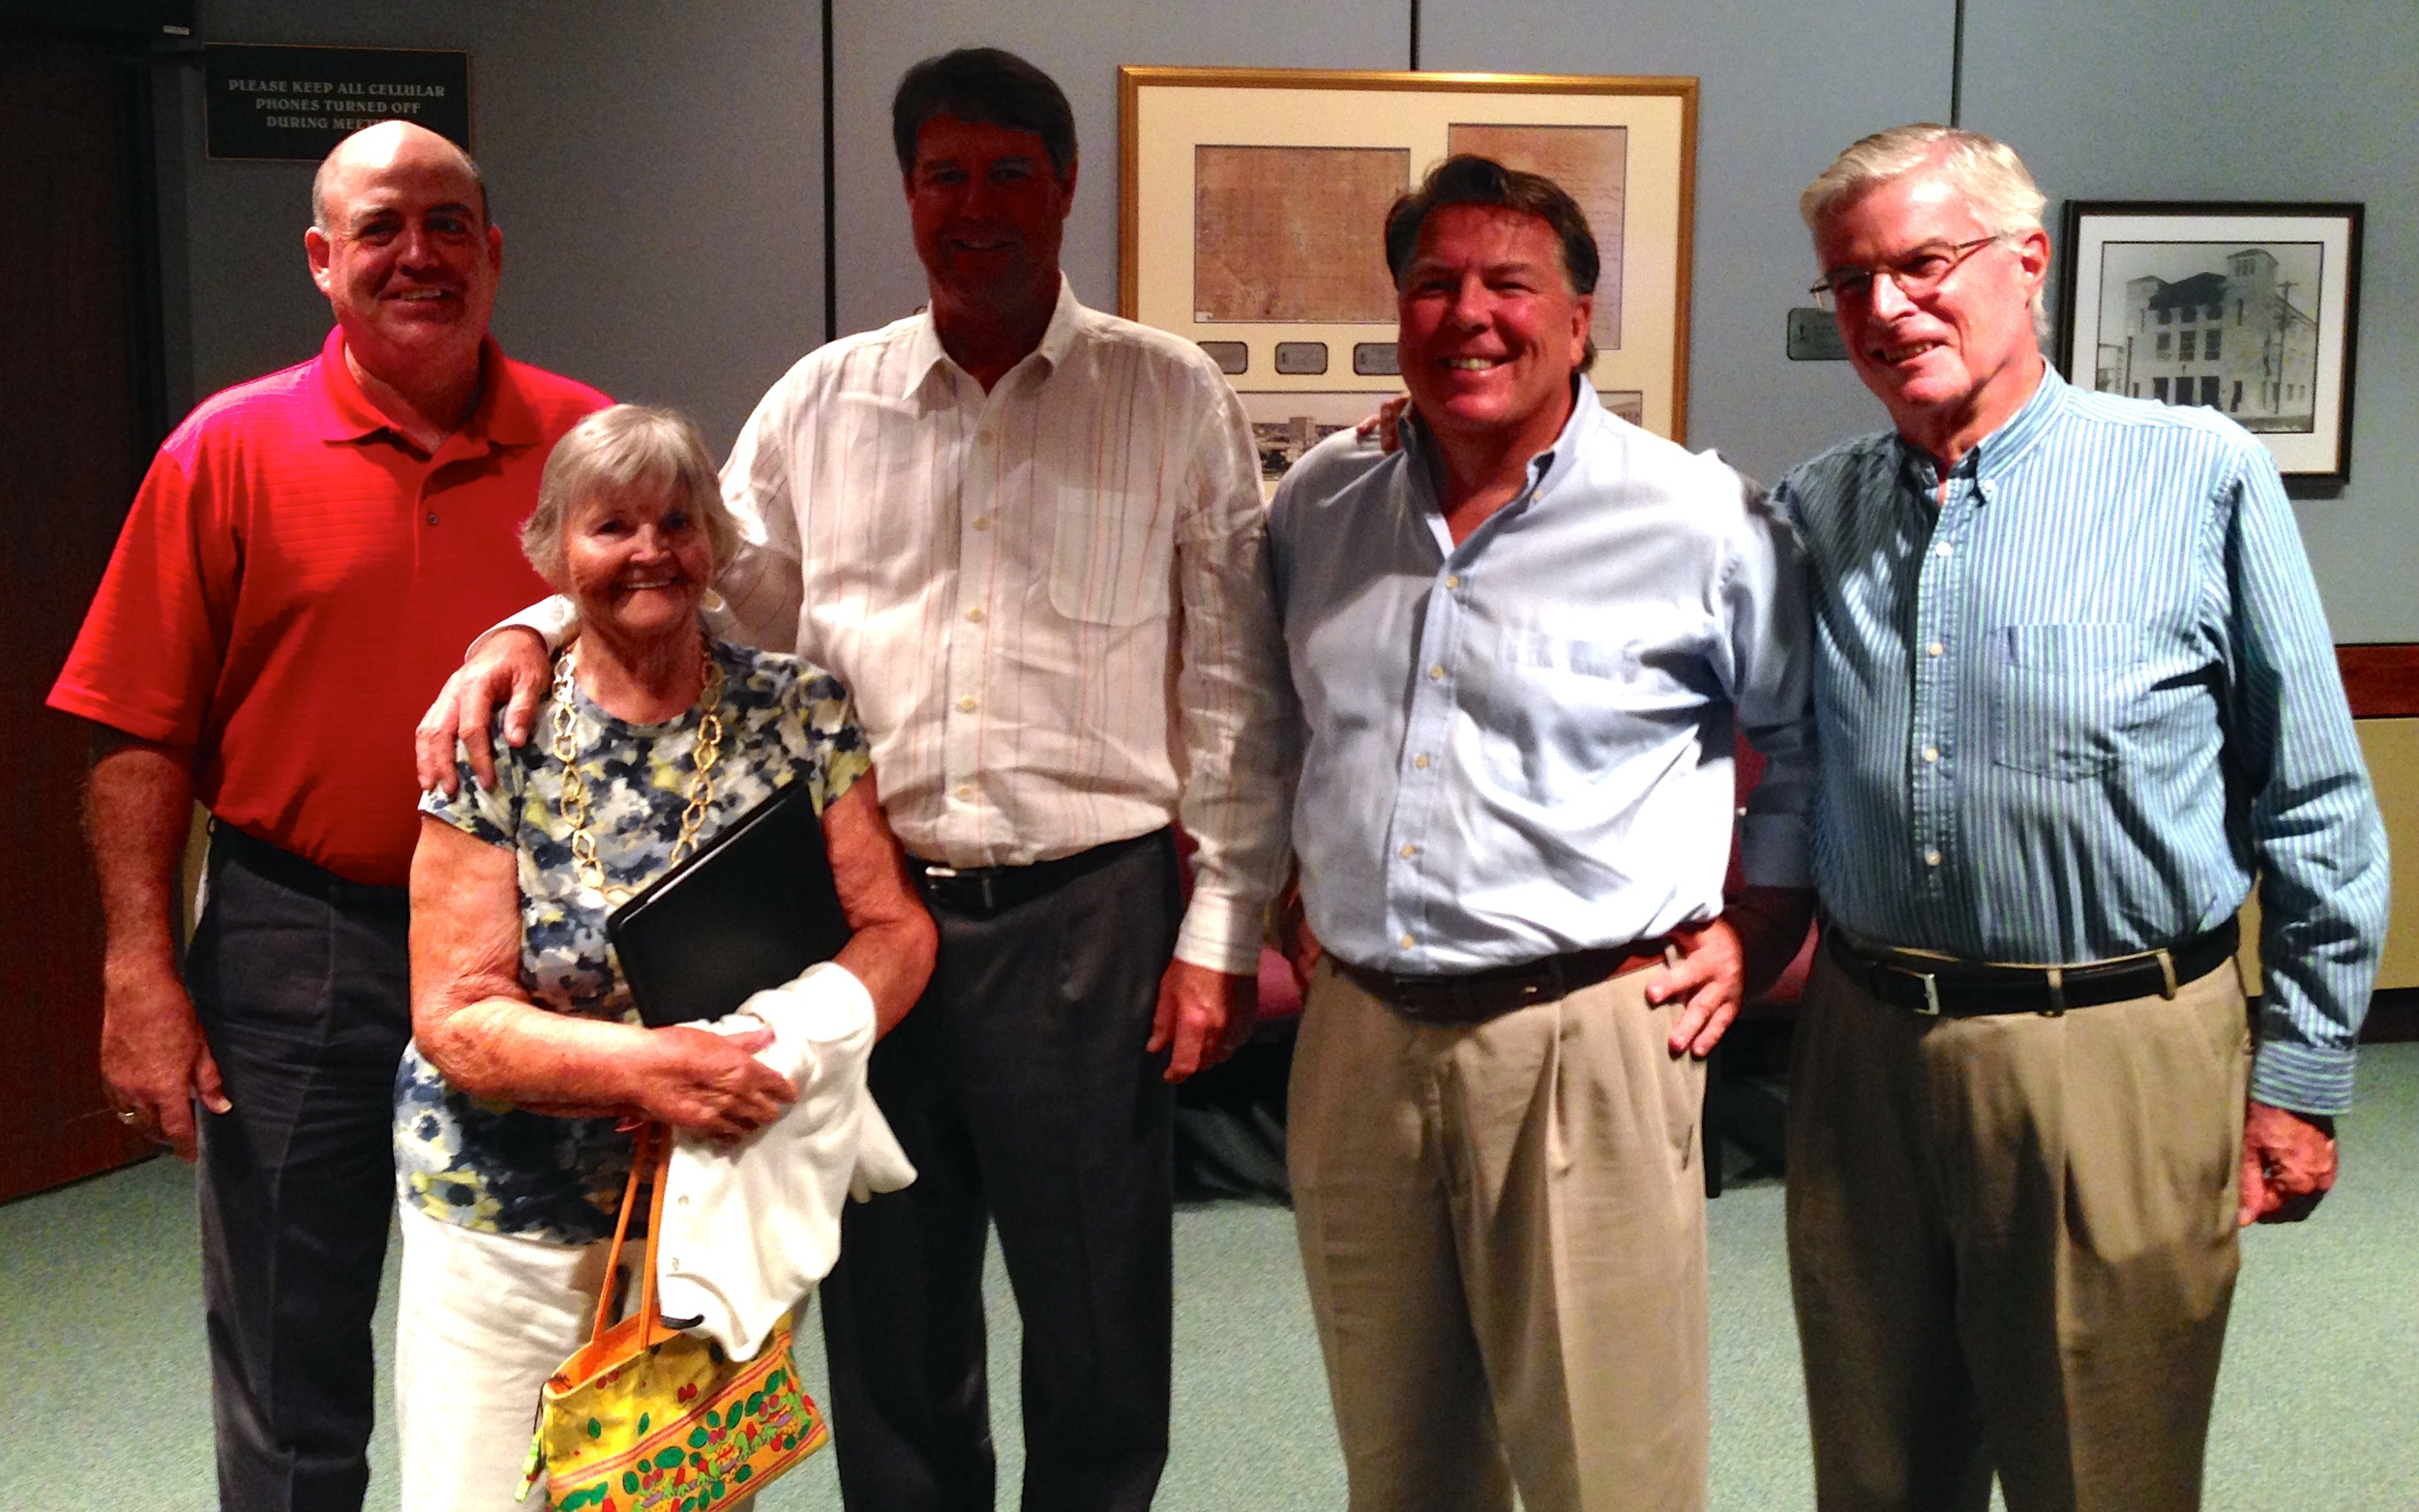 Big Night! (left to right) Friends of Bobby Jones Golf Club Trustee and Board Treasurer  Dan Smith , CPA; City of Sarasota Parks, Recreation and Environmental Protection Advisory Board Chair  Millie Small ; PGA Tour Professional and Major Champion  Paul Azinger ; Friends of Bobby Jones Golf Club President  Shawn Pierson ; and Friends of Bobby Jones Golf Club Trustee and Board Secretary  George Martin , Esq. celebrate Sarasota City Commission unanimous vote to draft Resolution for the establishment of a Committee for the Master Plan for Bobby Jones Golf Club. Photo by former Sarasota Mayor Kelly Kirschner.